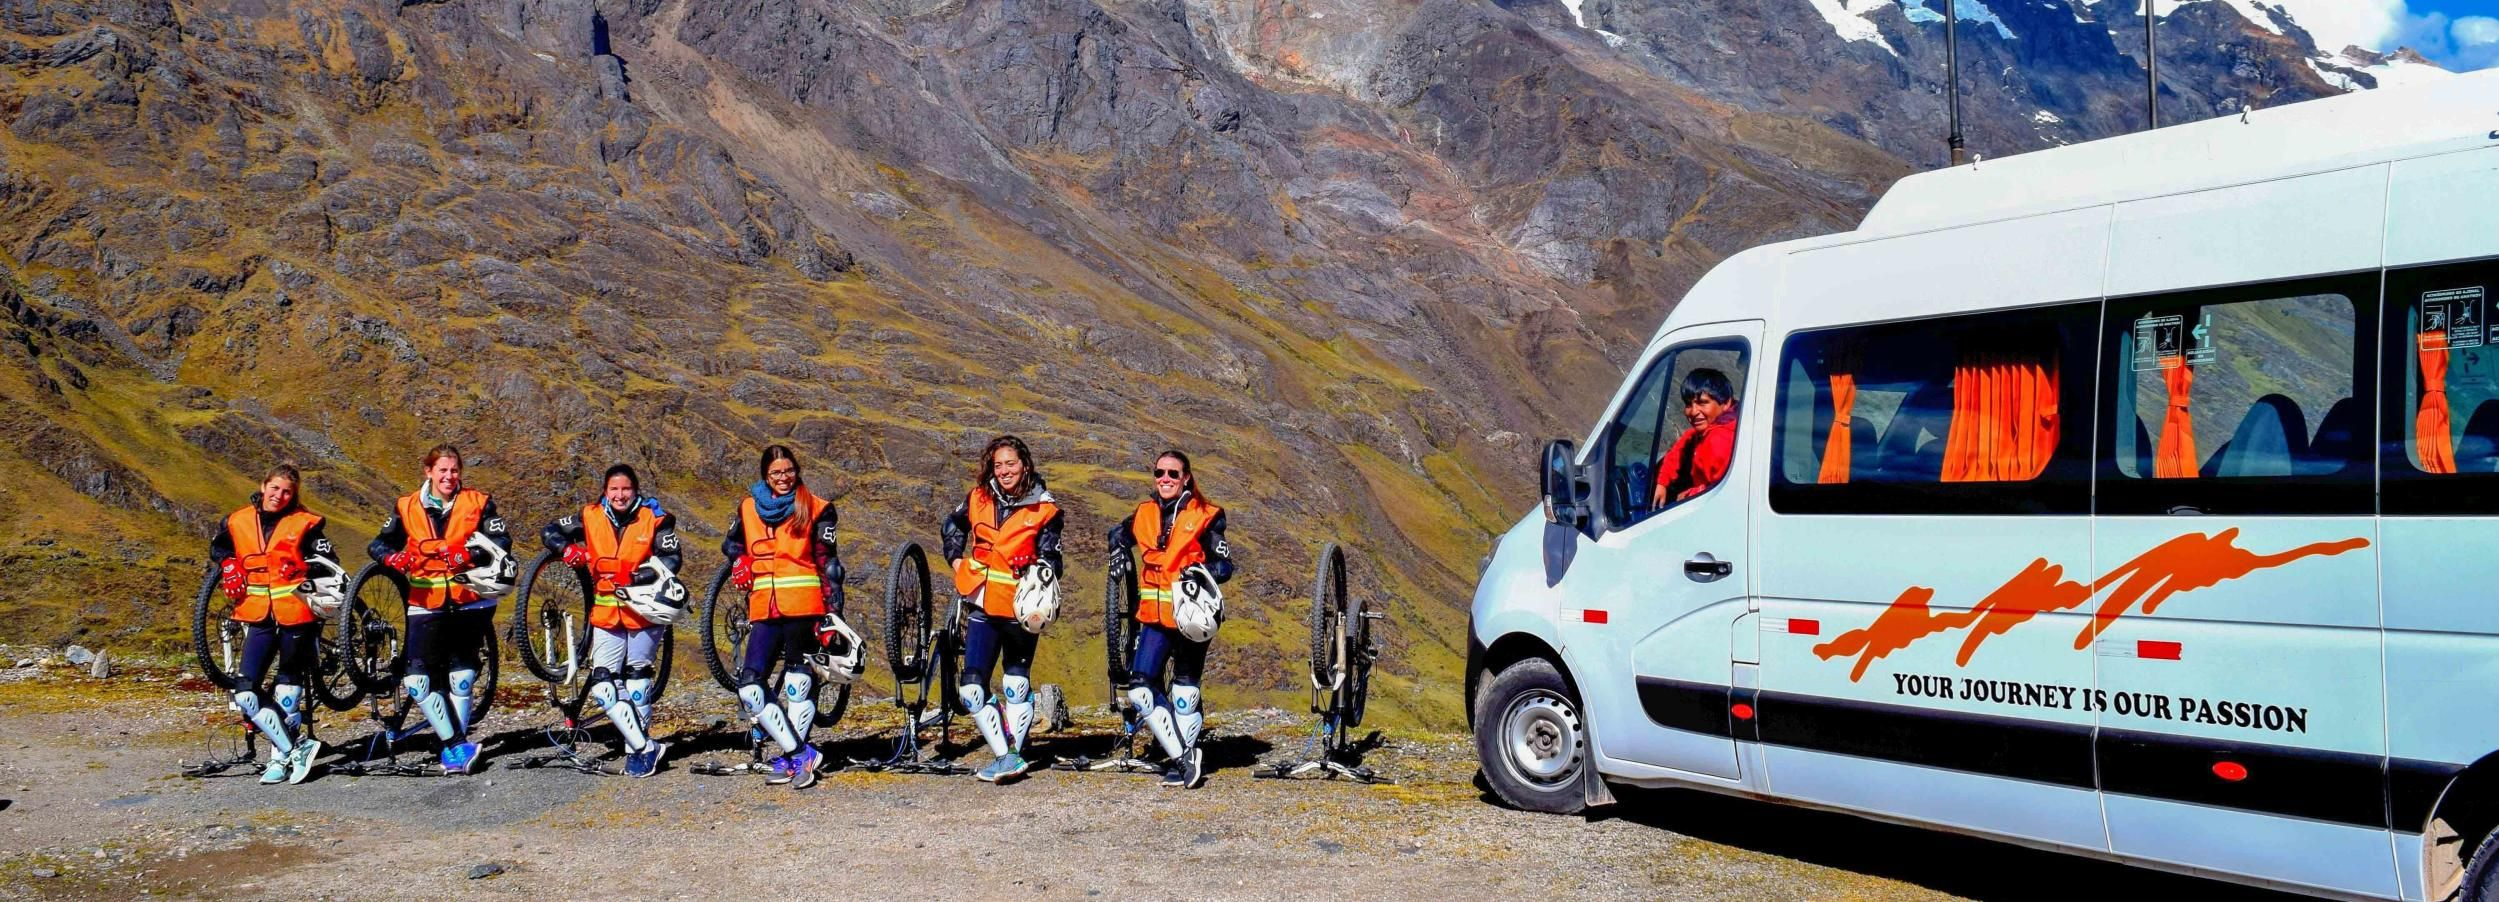 4-Day Inca Jungle Adventure with Mountain Biking and Rafting